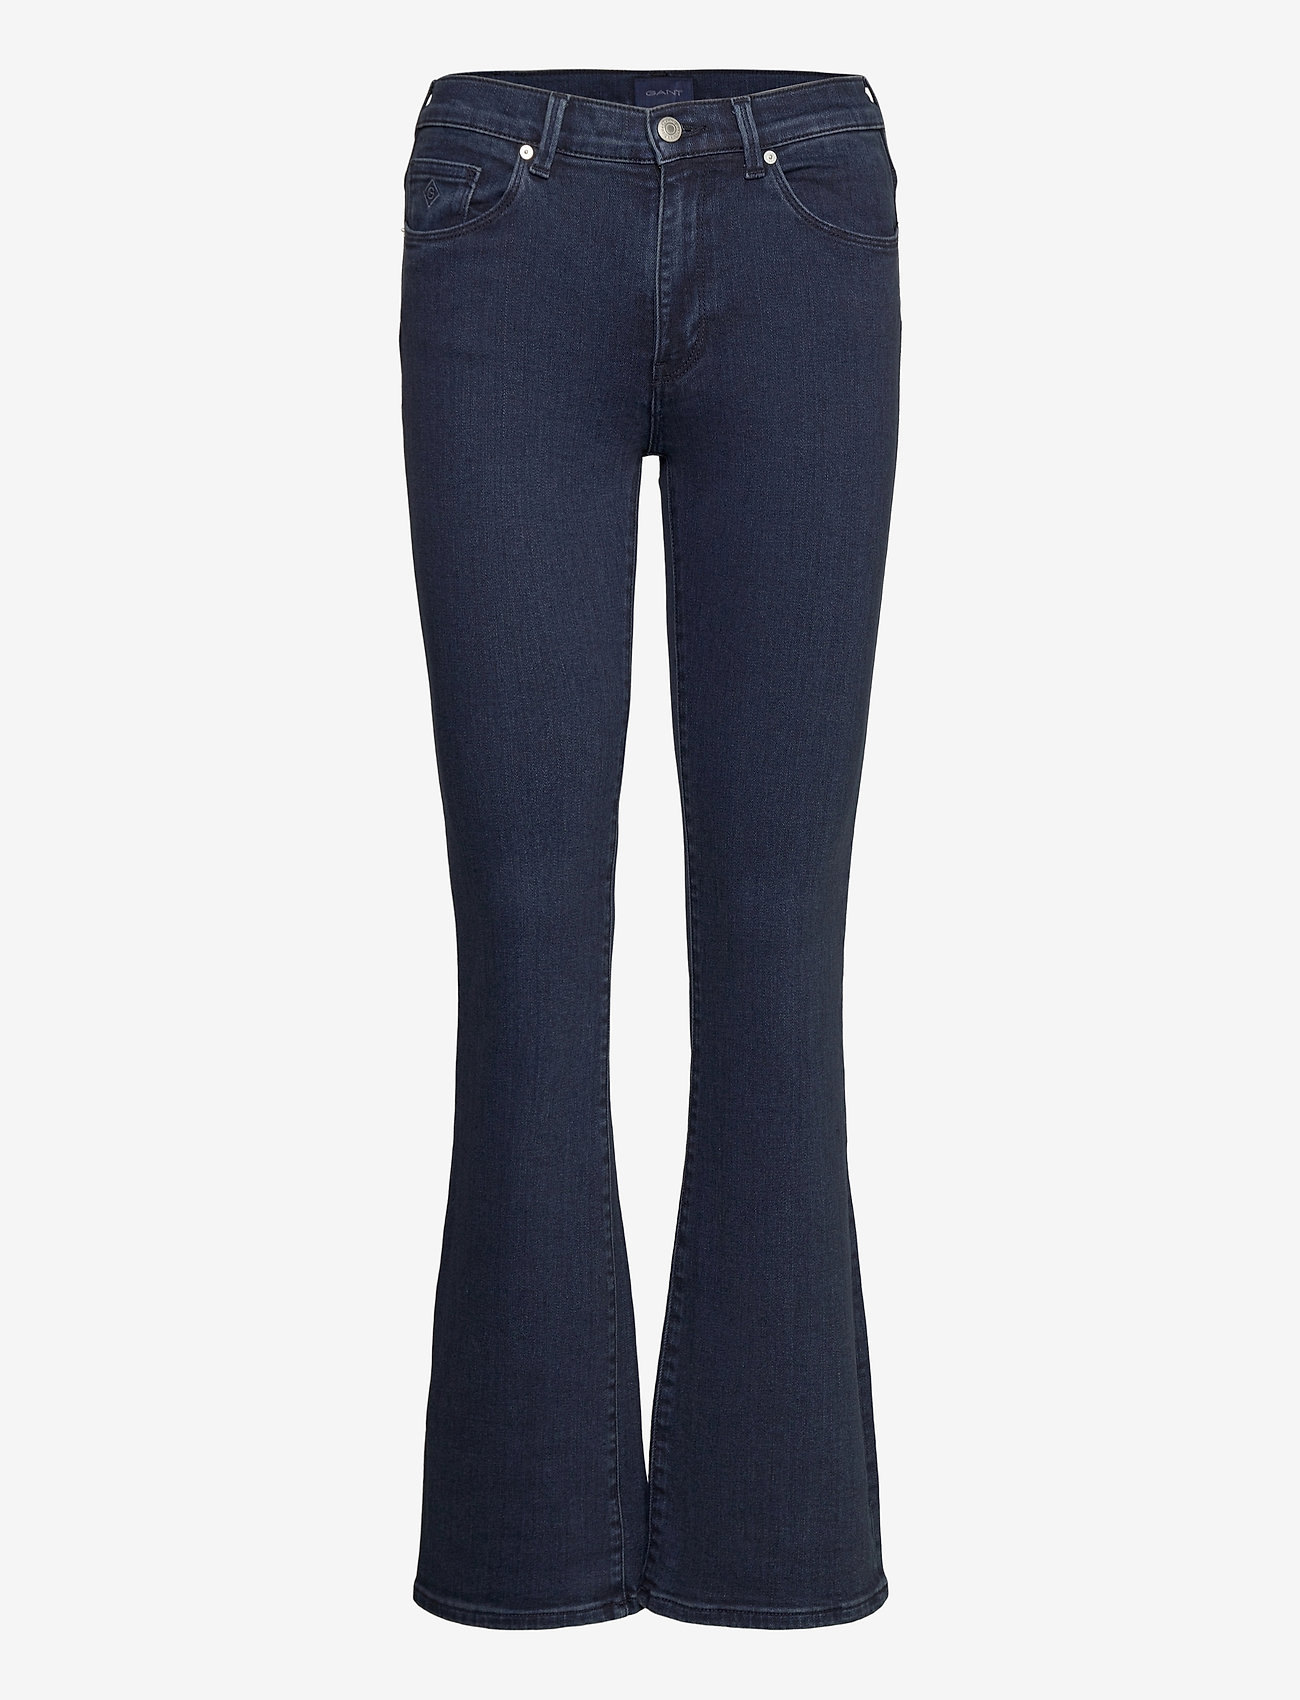 GANT - D1. SLIM BOOTCUT JEANS - boot cut jeans - dark blue broken in - 0